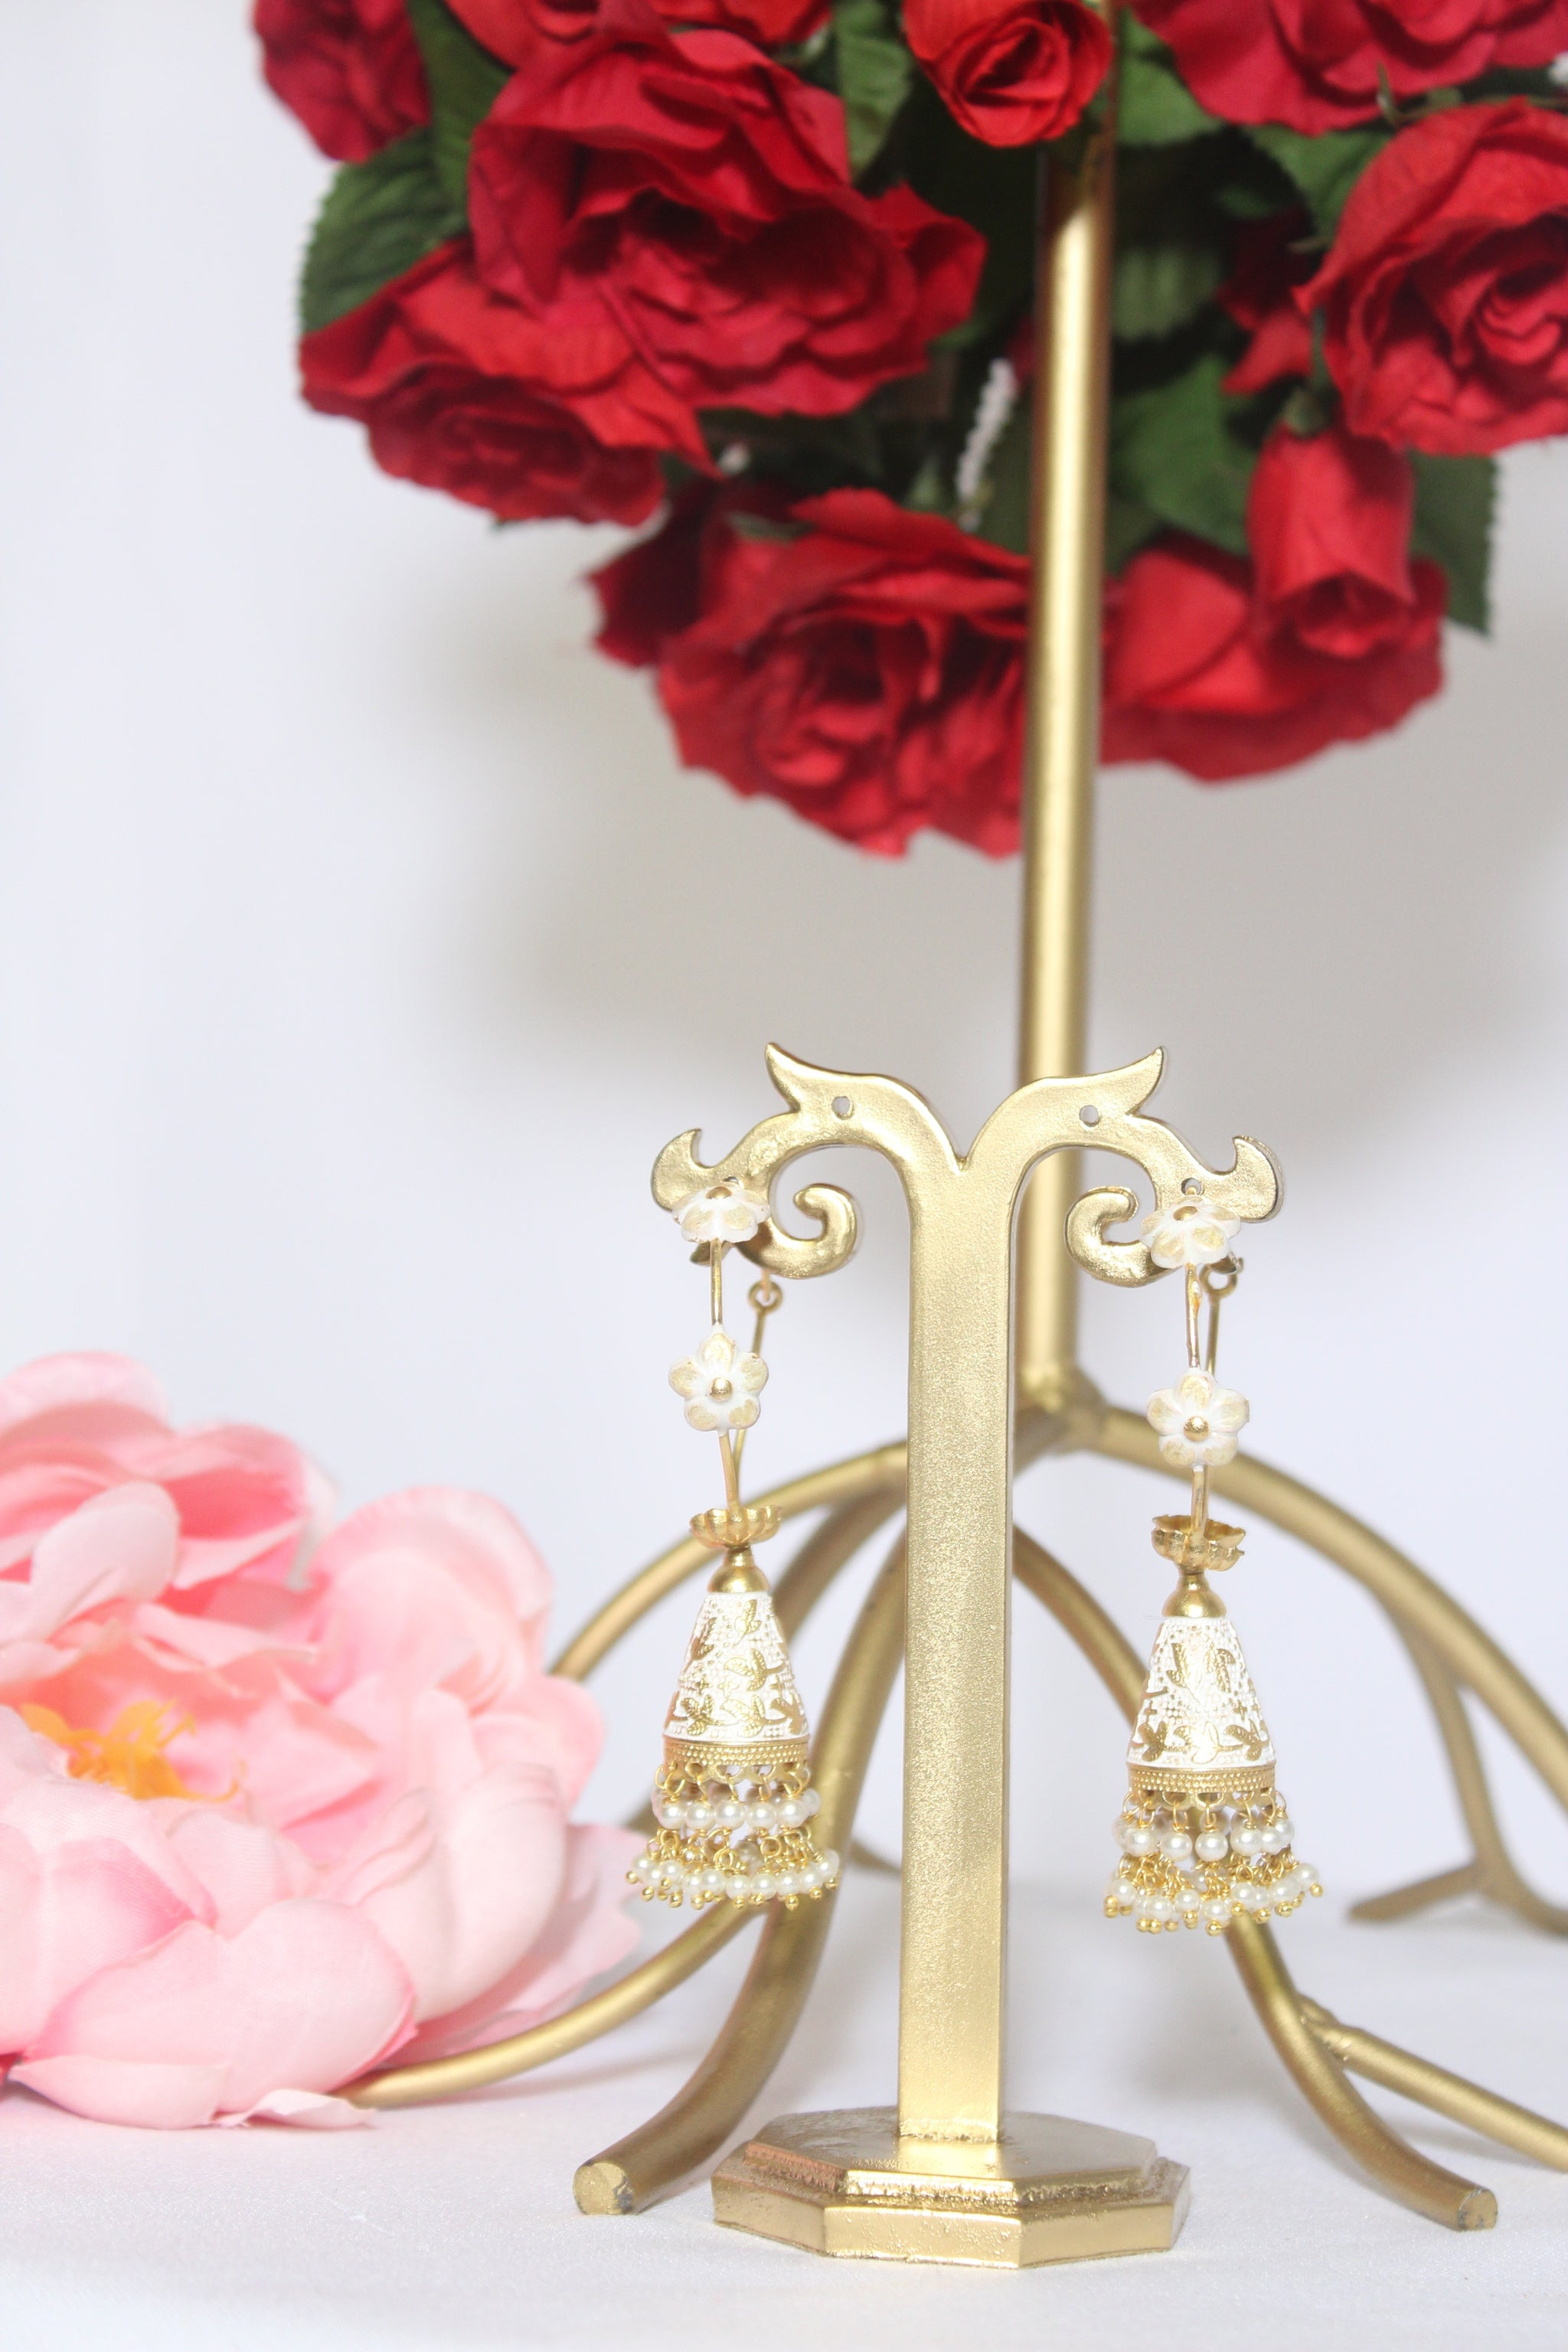 Delicate white & gold meenakari loop earrings with cone jhumki